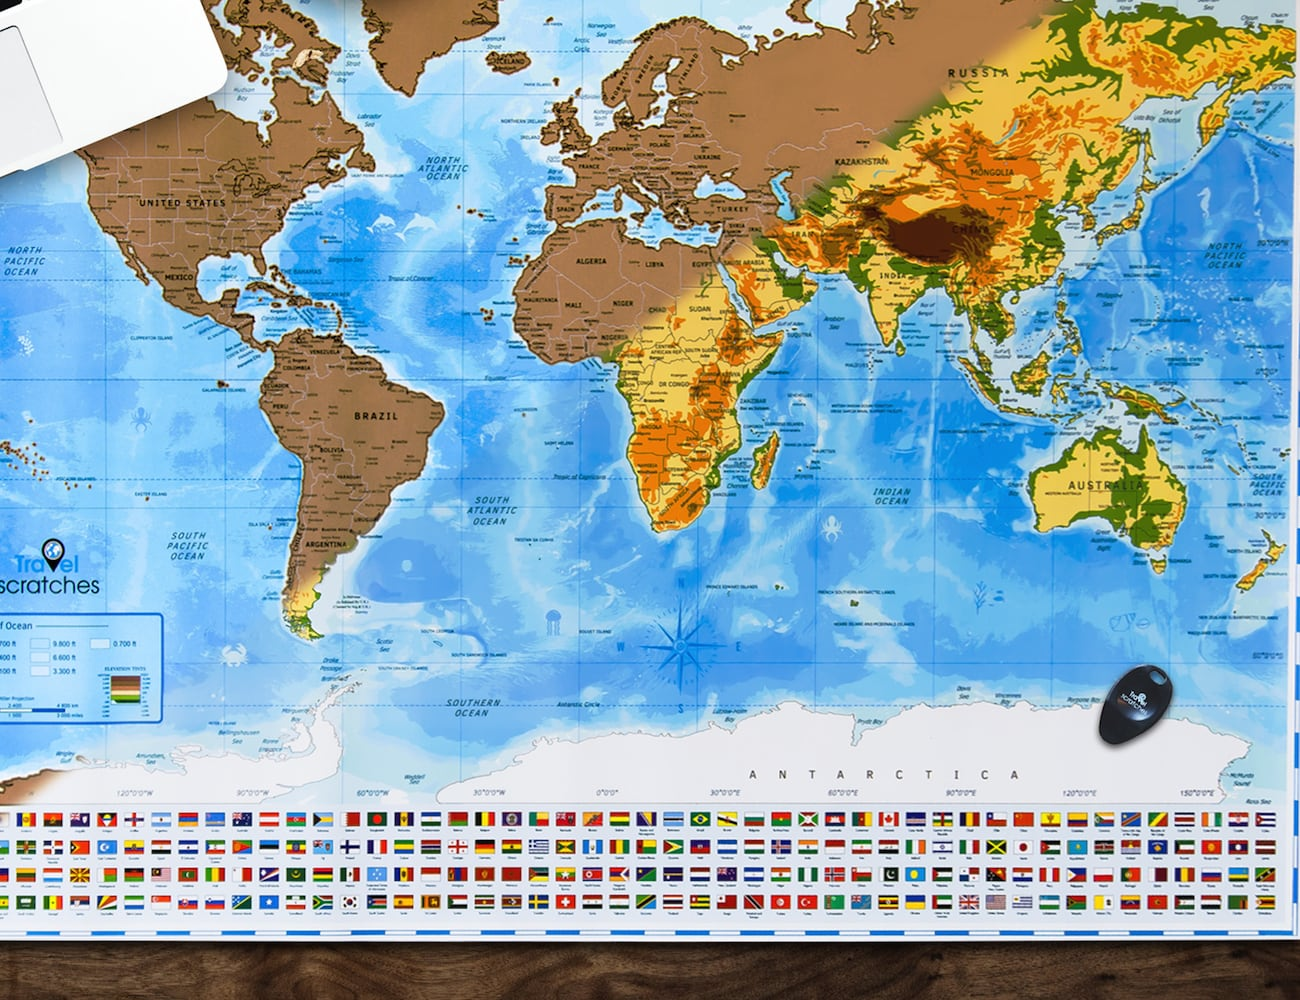 Travelscratches Travel Tracker Scratch Off World Map